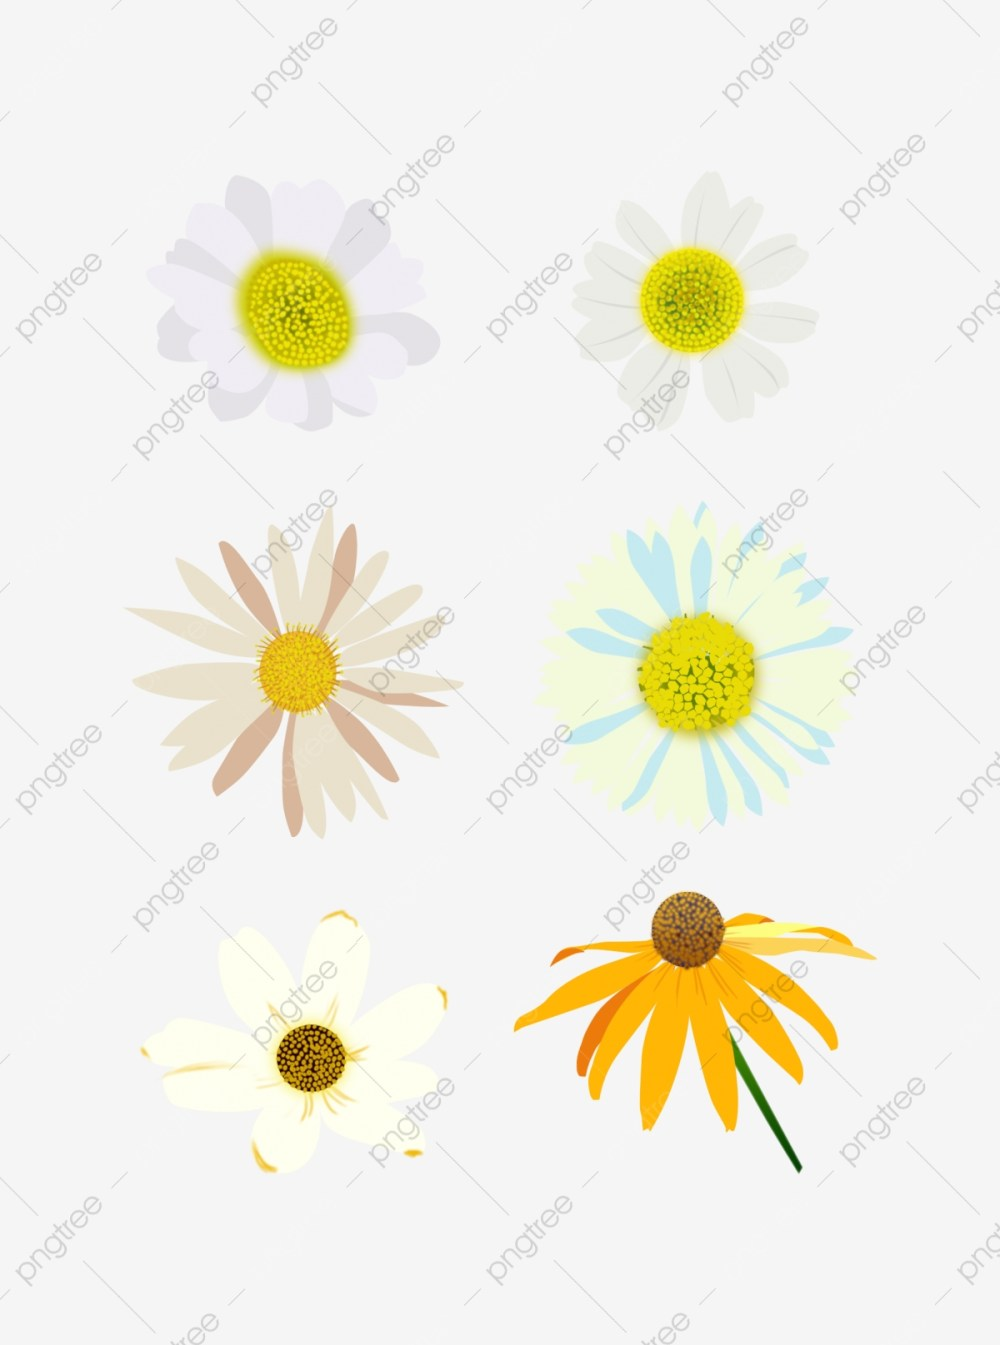 medium resolution of commercial use resource upgrade to premium plan and get license authorization upgradenow daisy daisy clipart